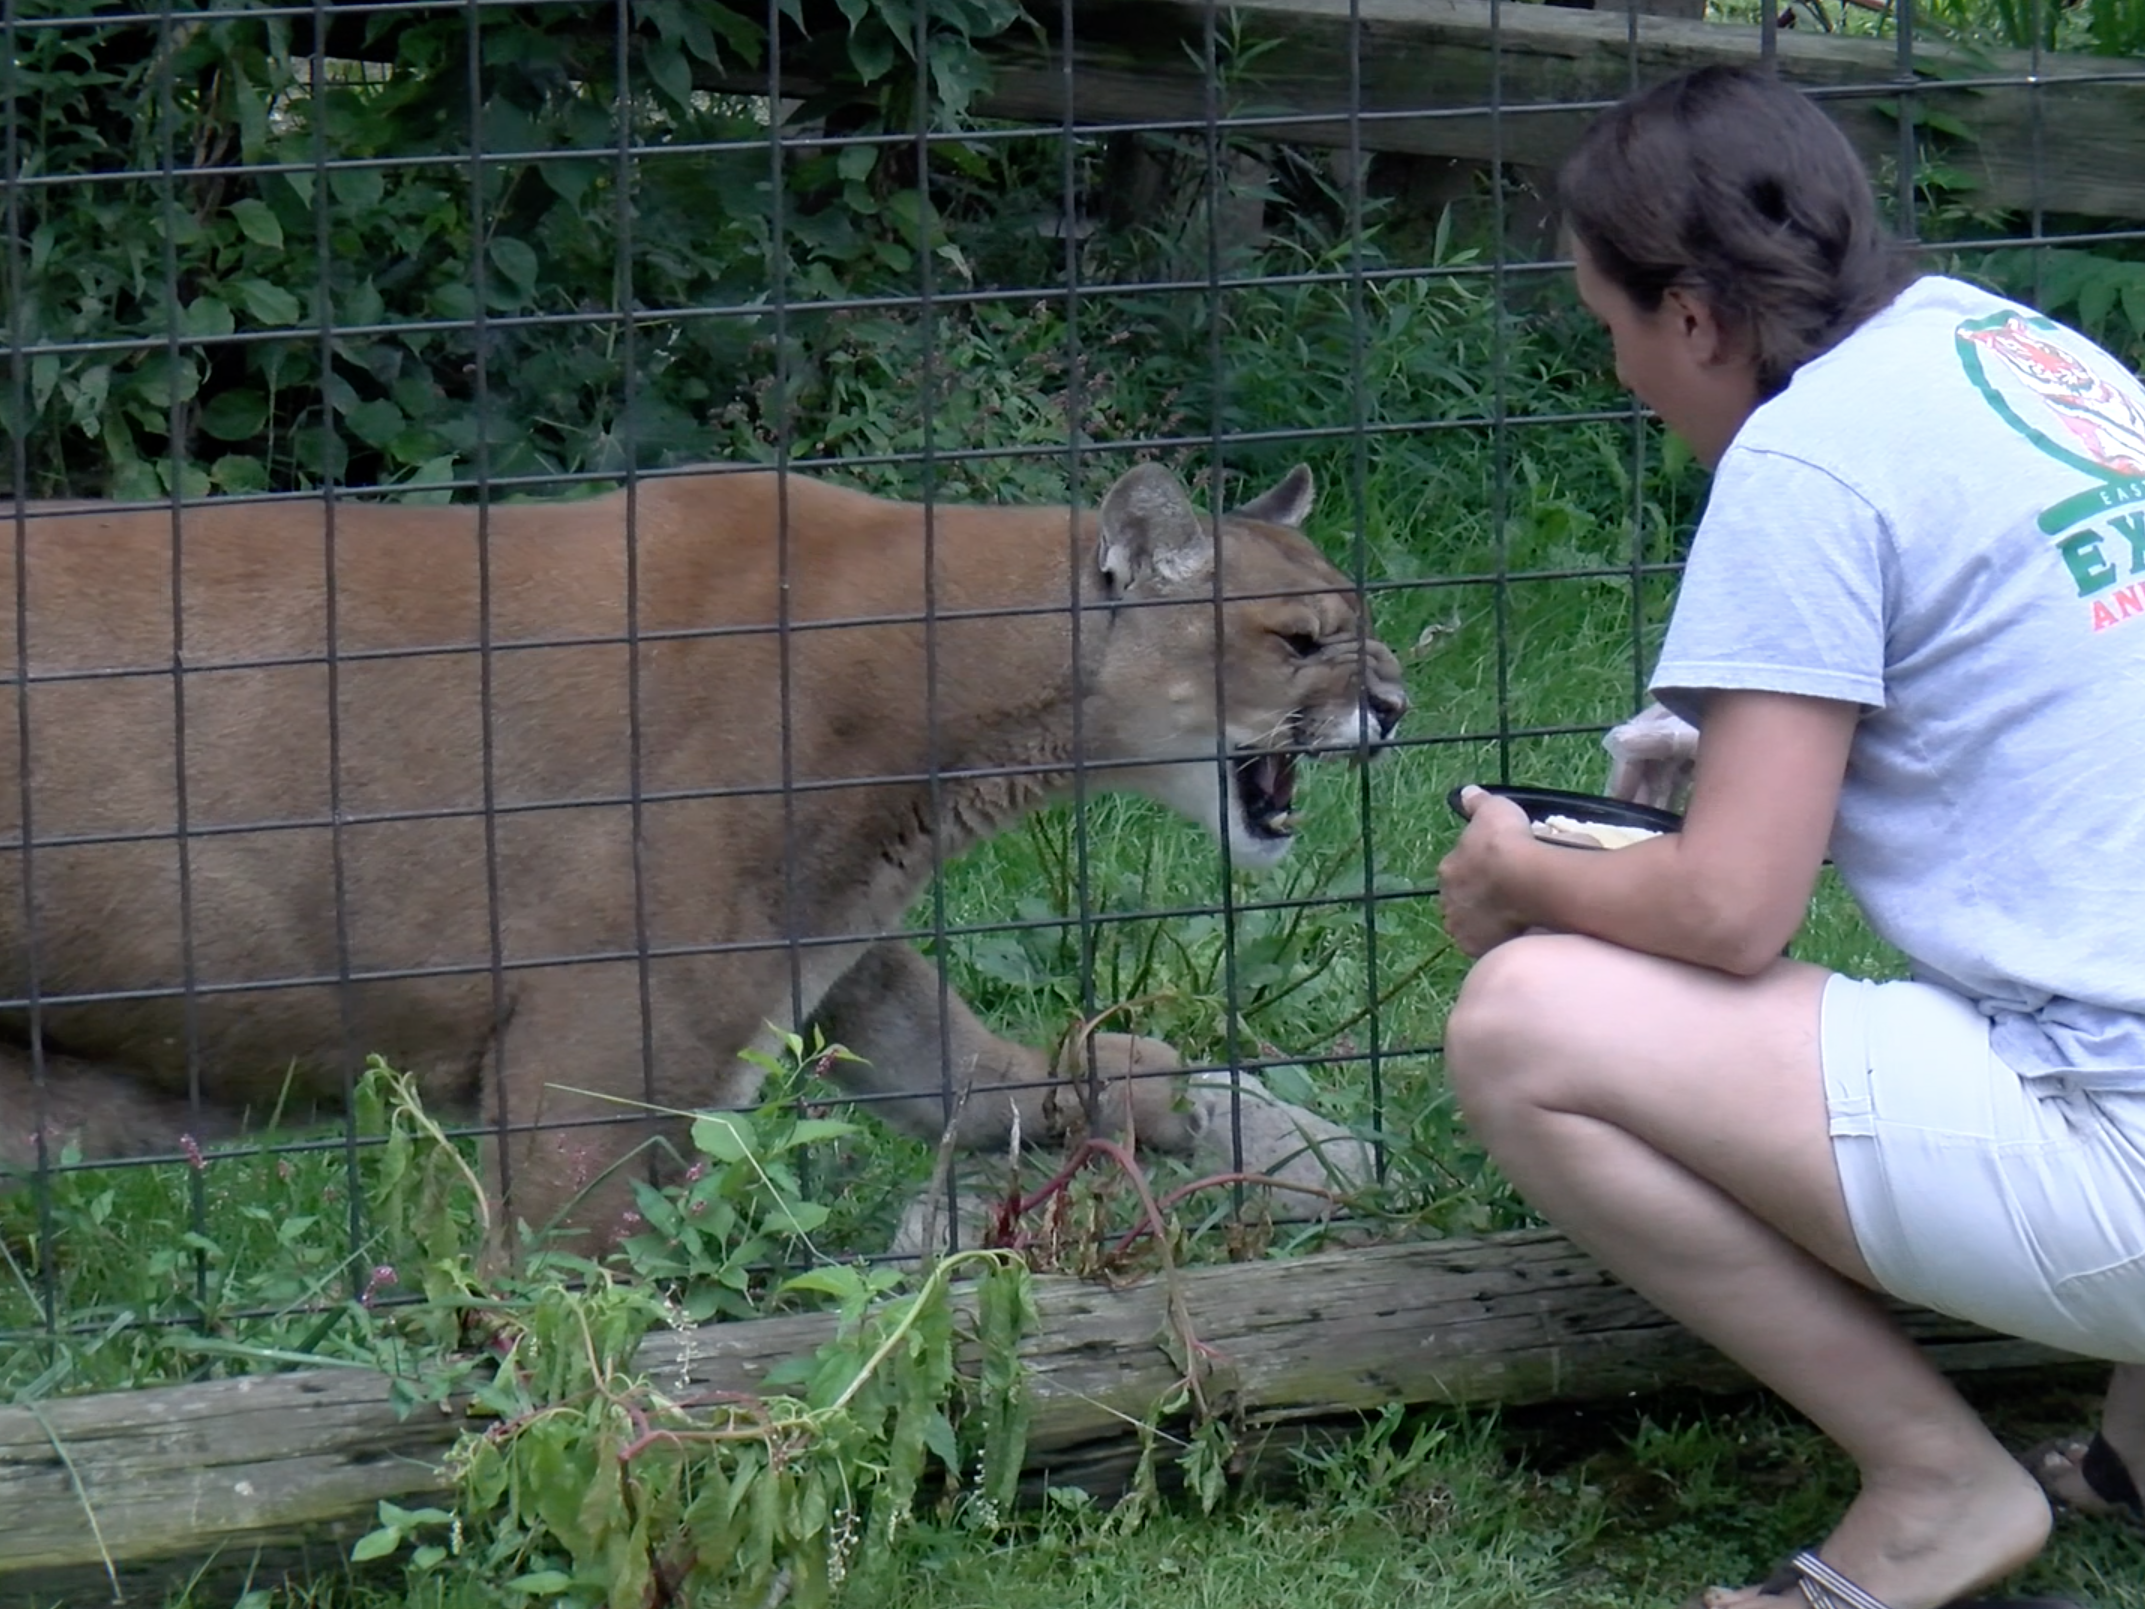 Brandi Luther feeds a mountain lion at the East Coast Exotic Animal Rescue.